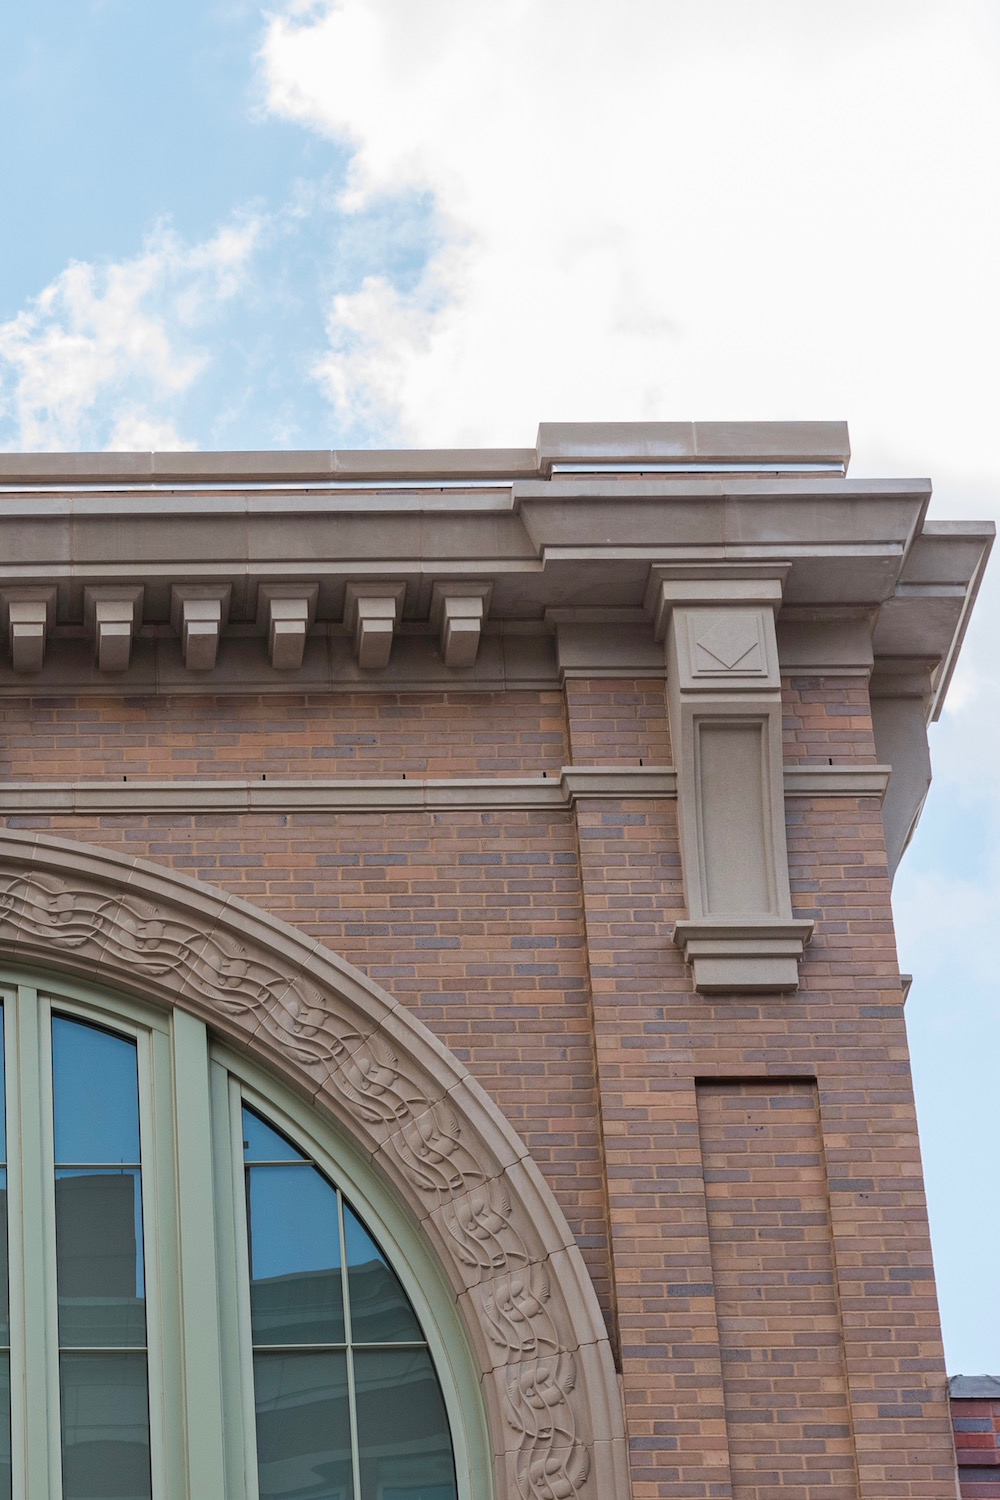 Retail, Entertainment Building Design Accent using Cast Stone, GFRC